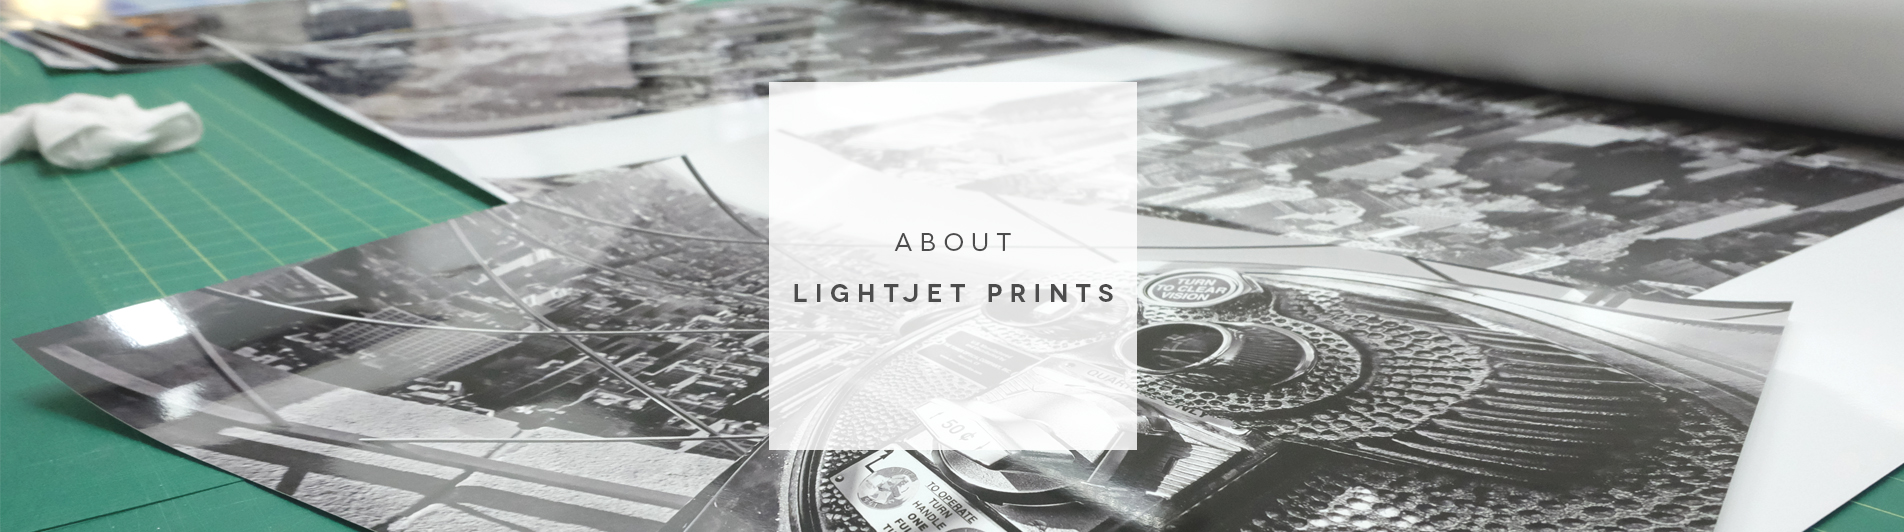 About Lightjet Prints